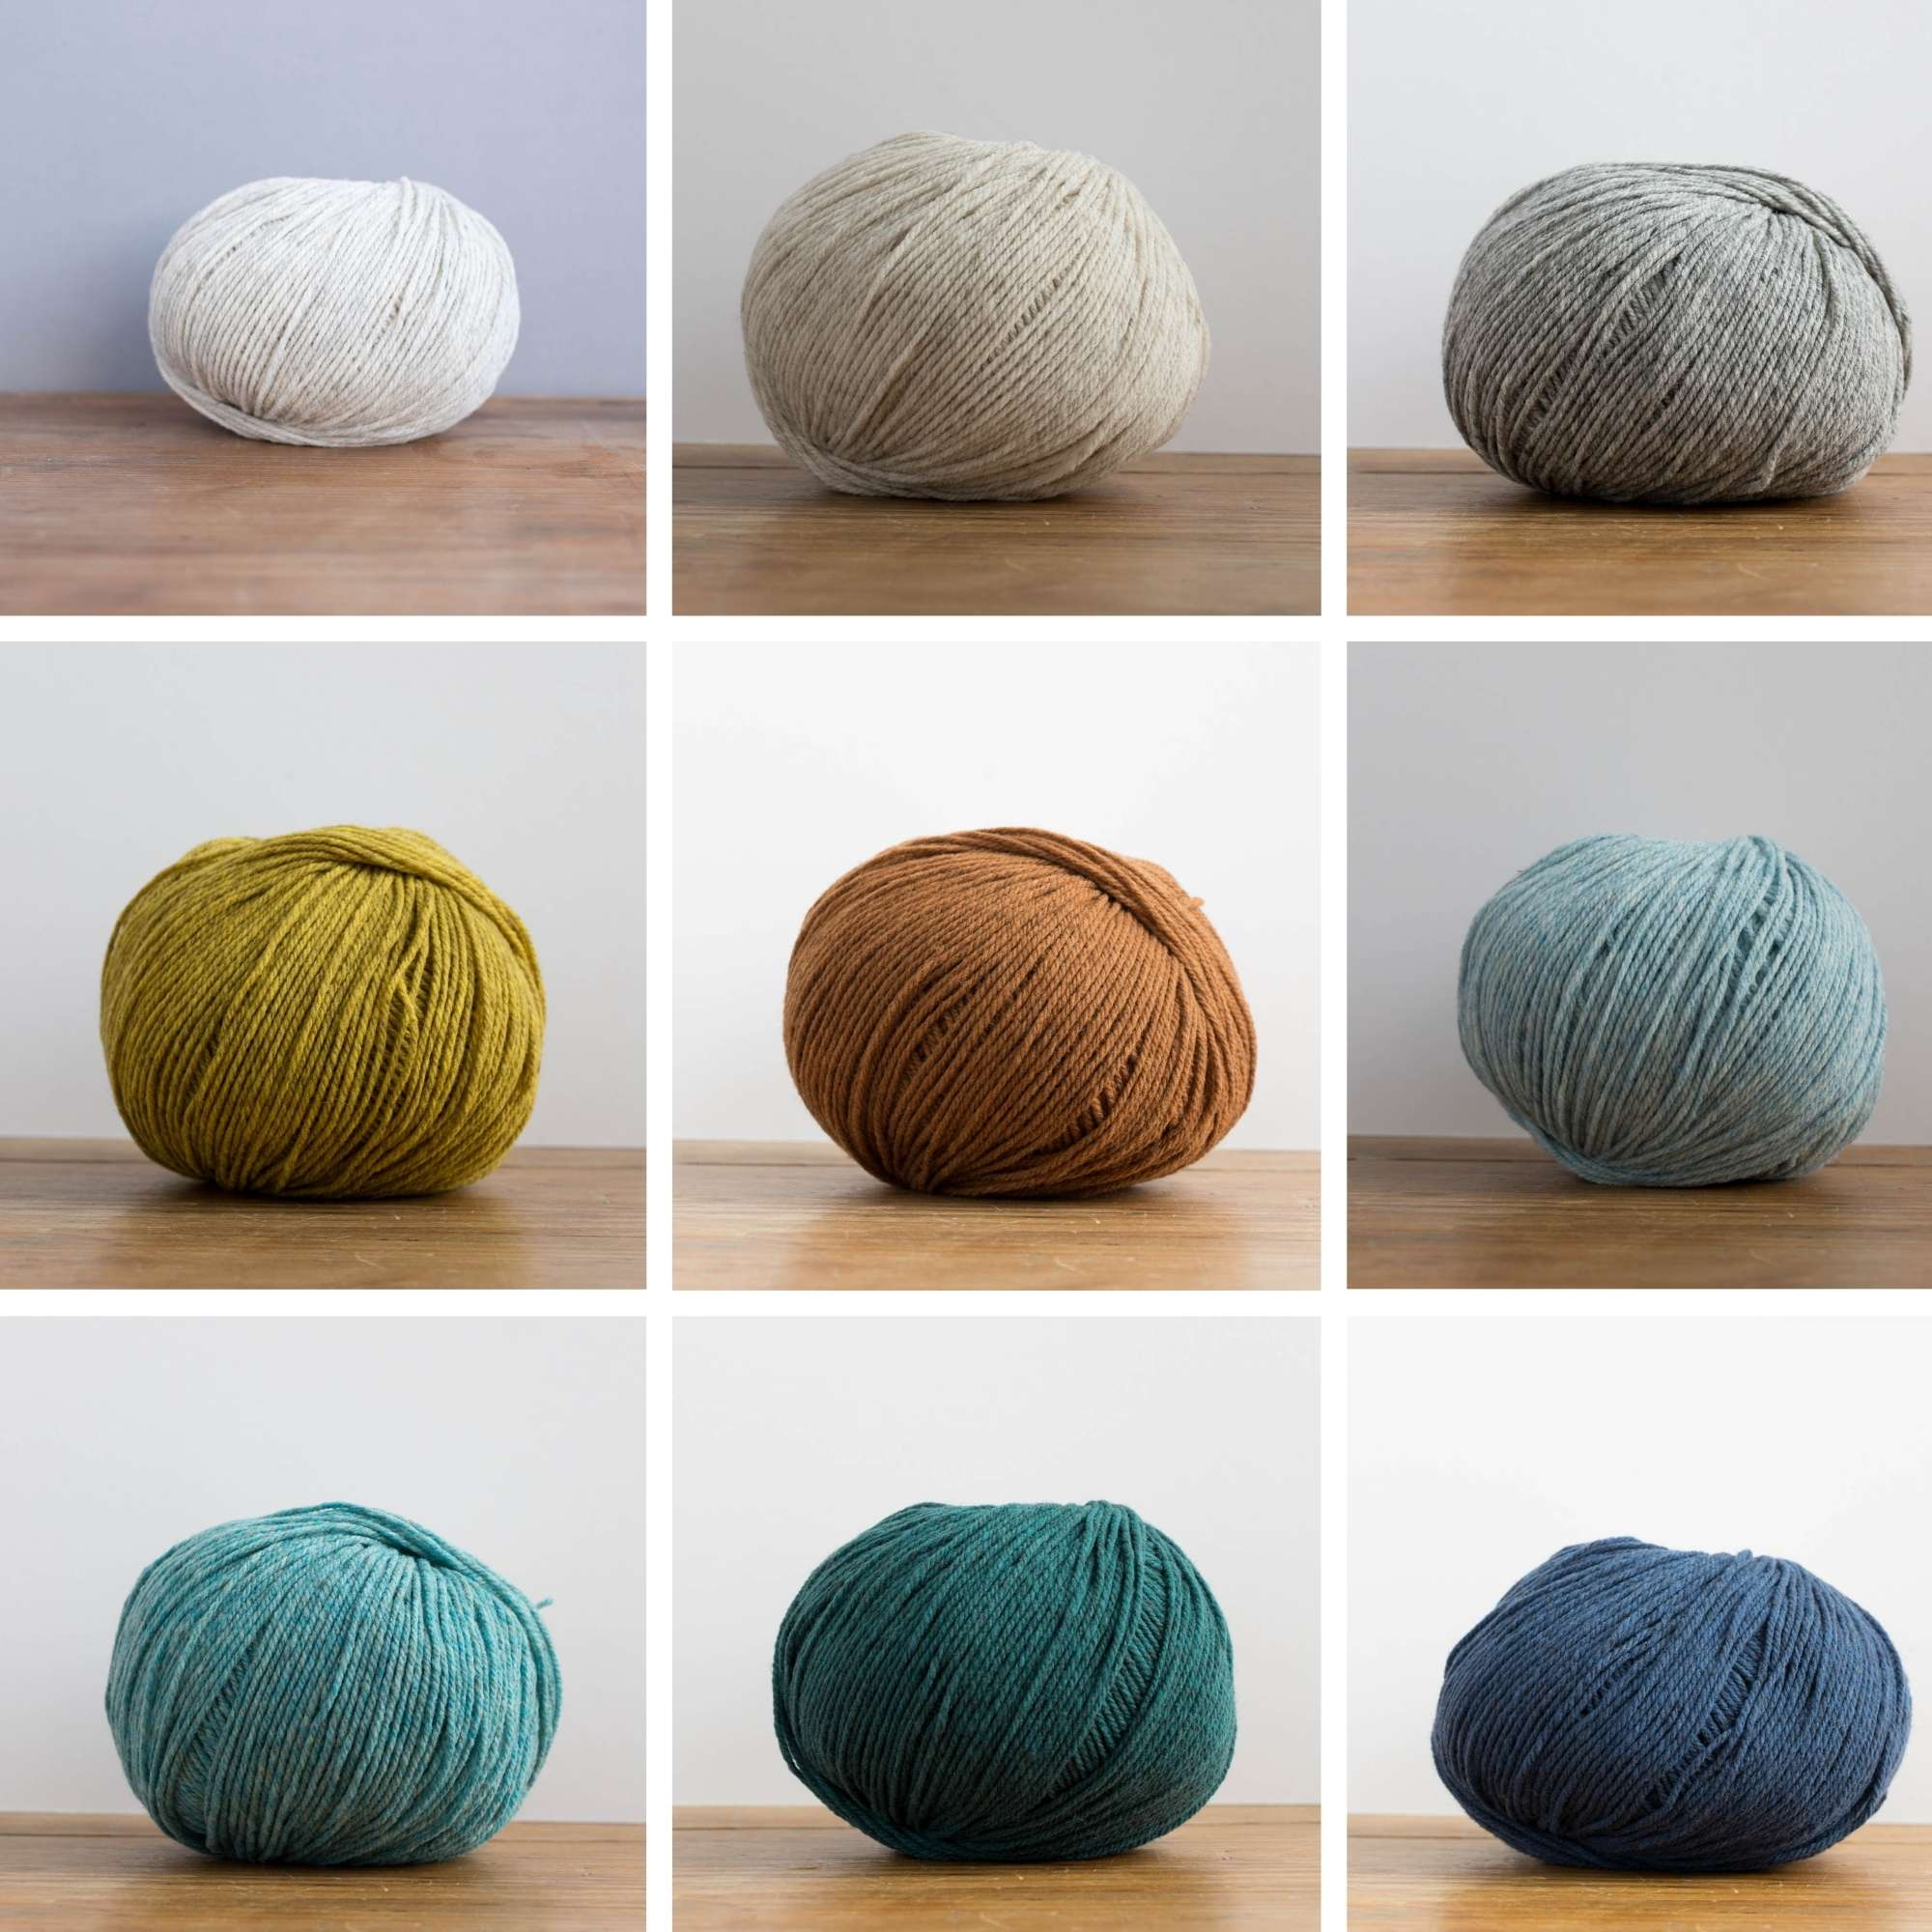 A collage of 9 images showing 9 balls of yarn in a variety of earthy colours.